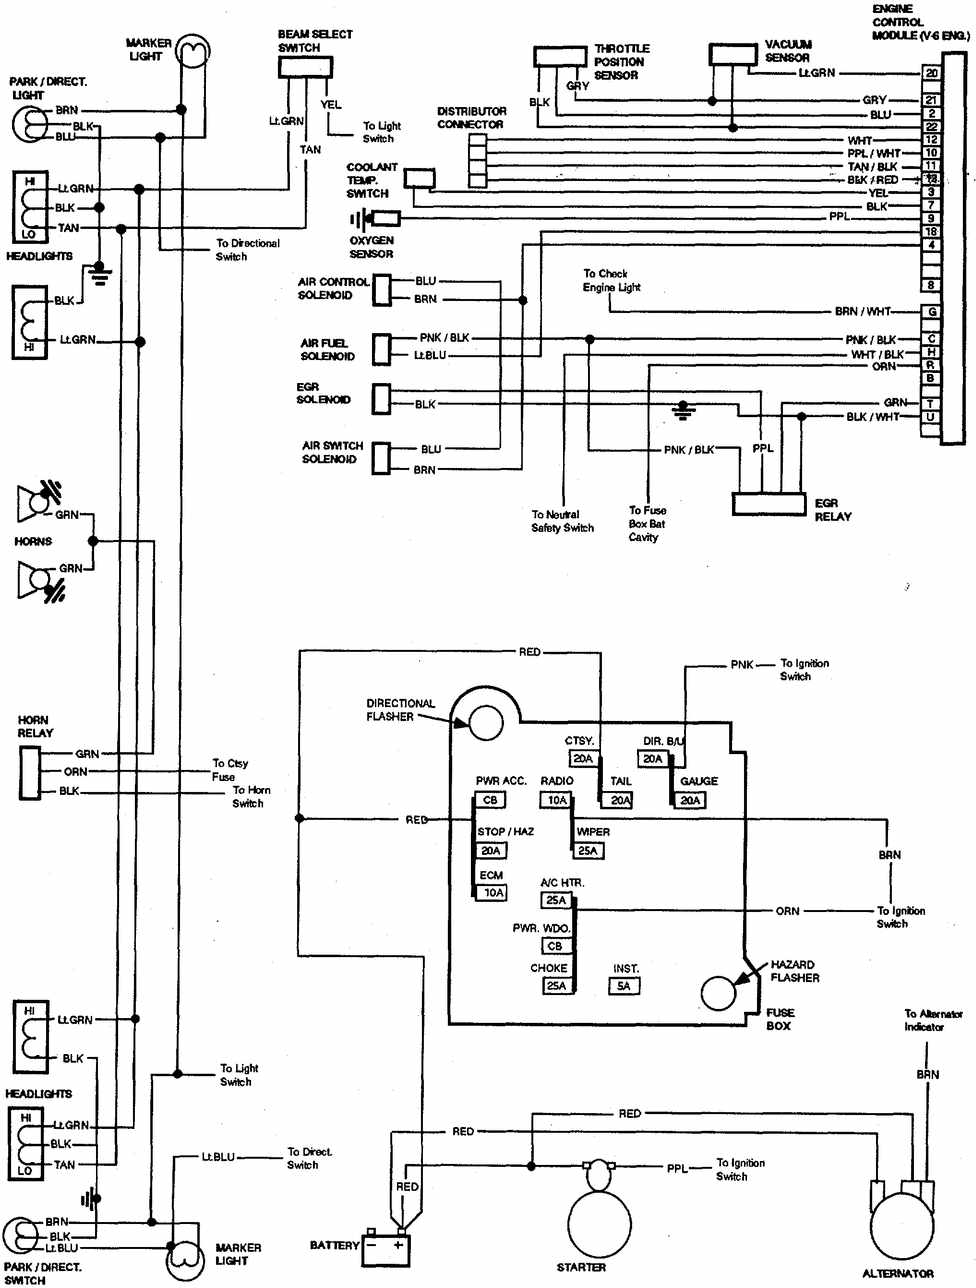 ecm wiring diagram for 2007 gmc diesel